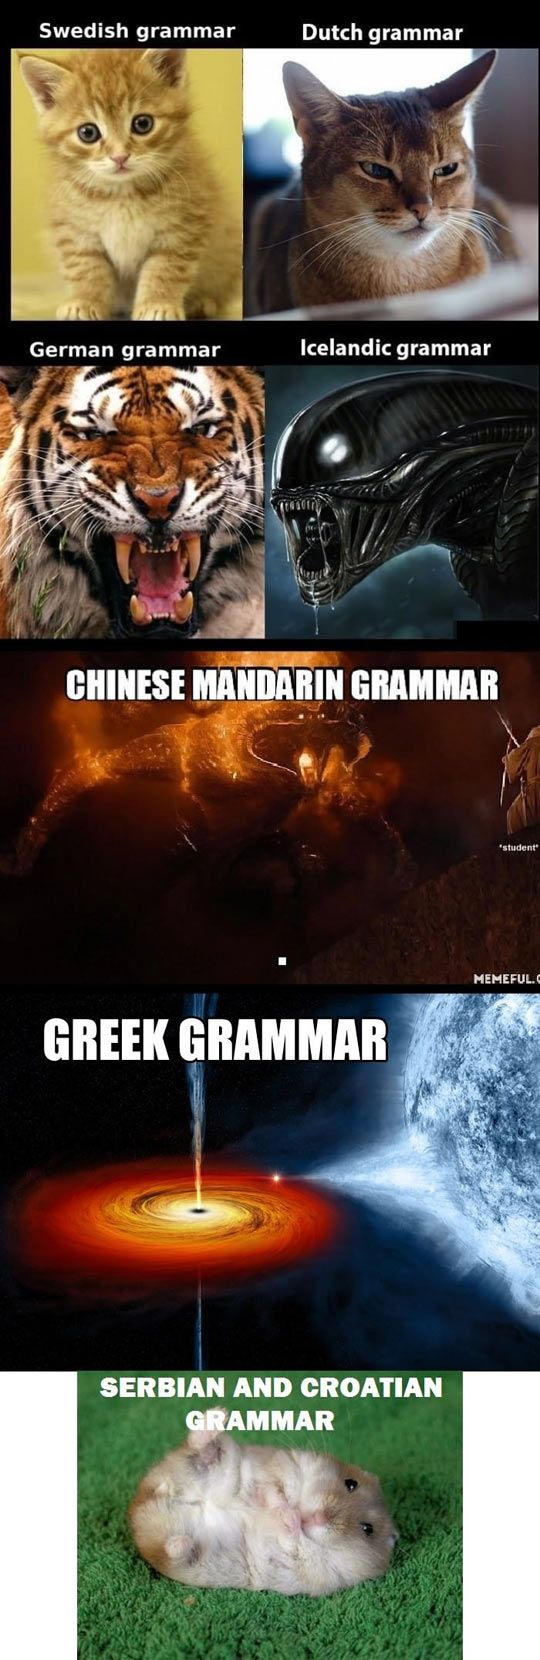 e390064688f8ef288757818e571e8246 french grammar english grammar 143 best languages are awesome images on pinterest funny stuff,German Word Meme